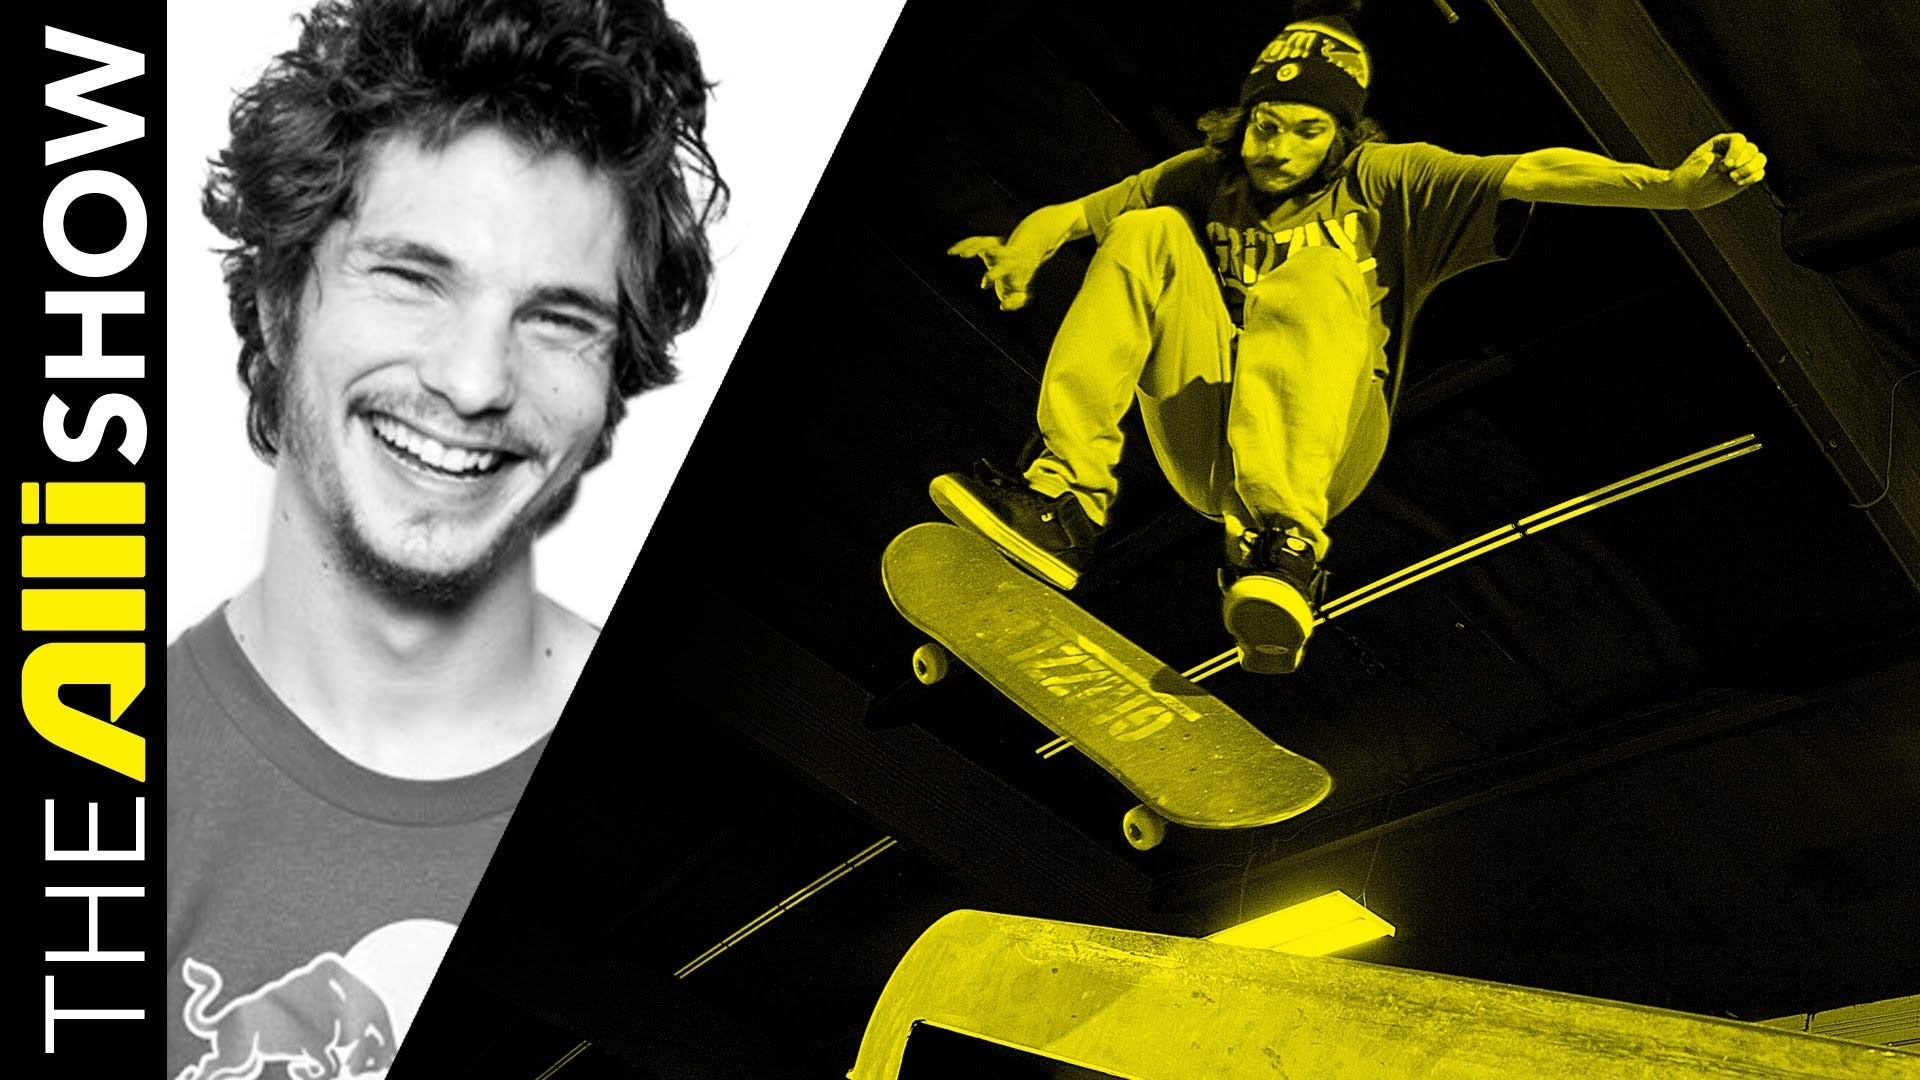 Torey Pudwill, aka T-Puds, Skates to the Top Then Starts Grizzly Grip, The  Alli Show – YouTube